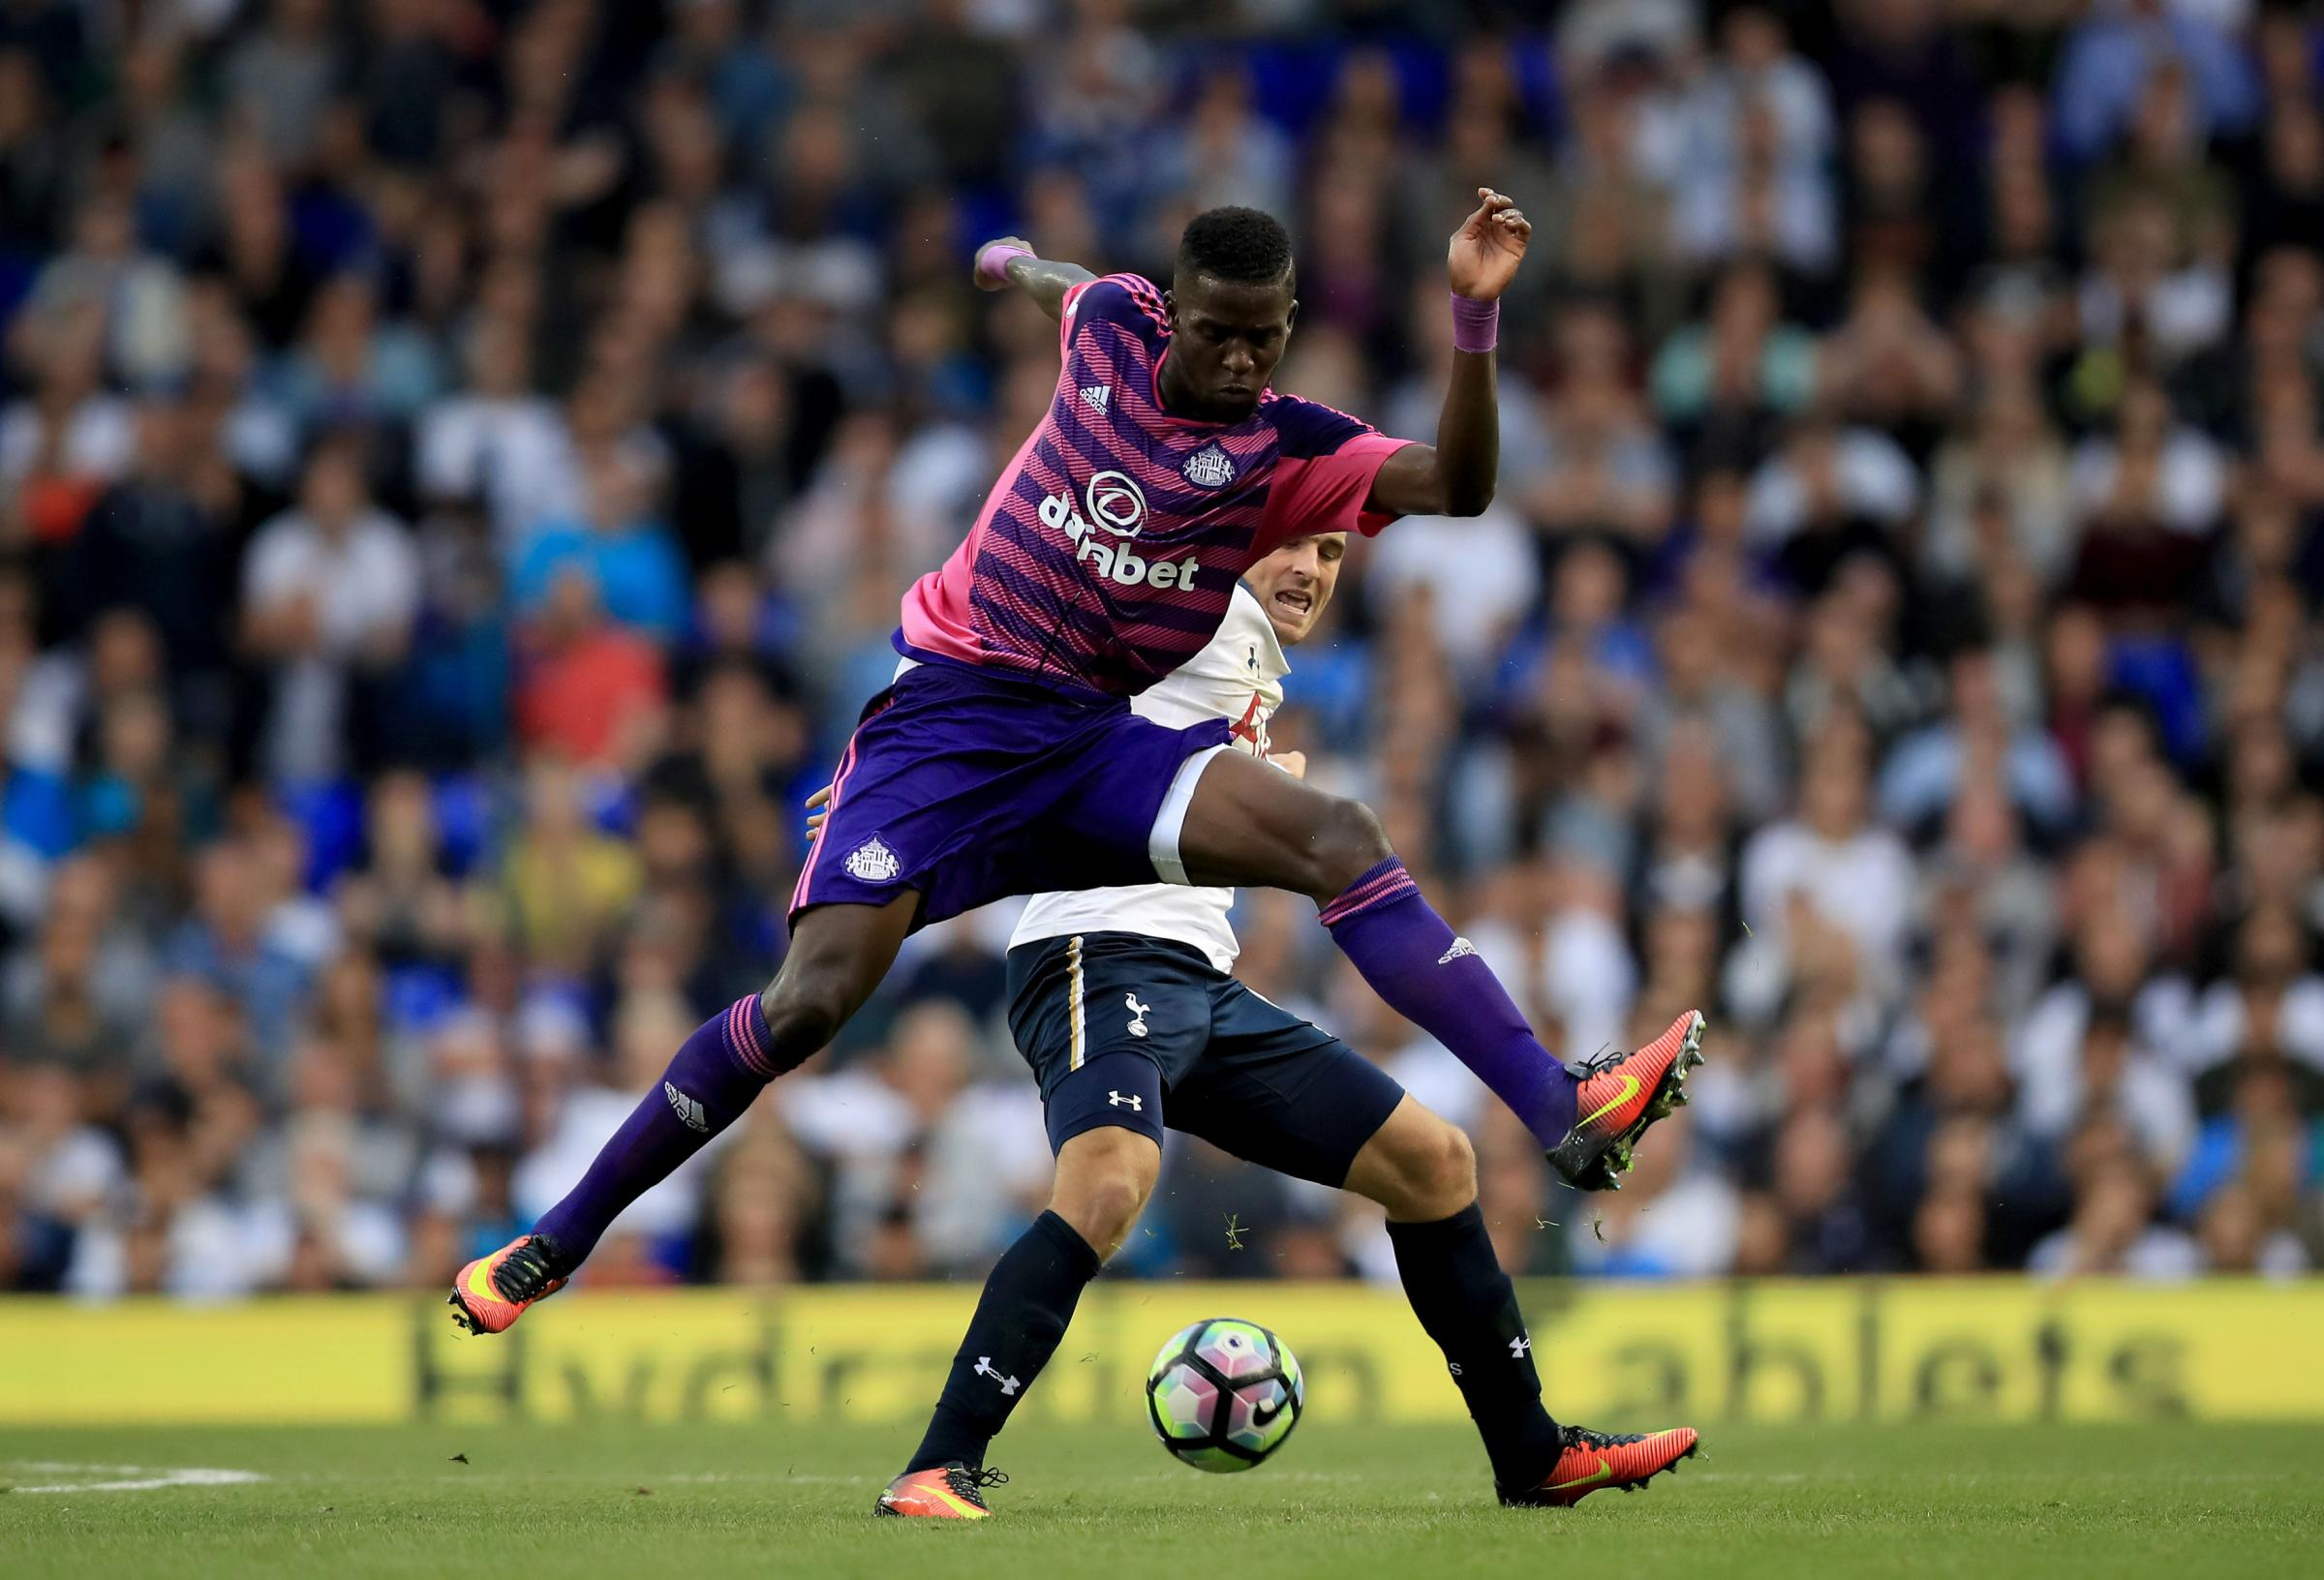 Sunderland's Papy Djilobodji and Tottenham Hotspur's Vincent Janssen battle for the ball during the Premier League match at White Hart Lane, London. PRESS ASSOCIATION Photo. Picture date: Sunday September 18, 2016. See PA story SOCCER Tottenham. P